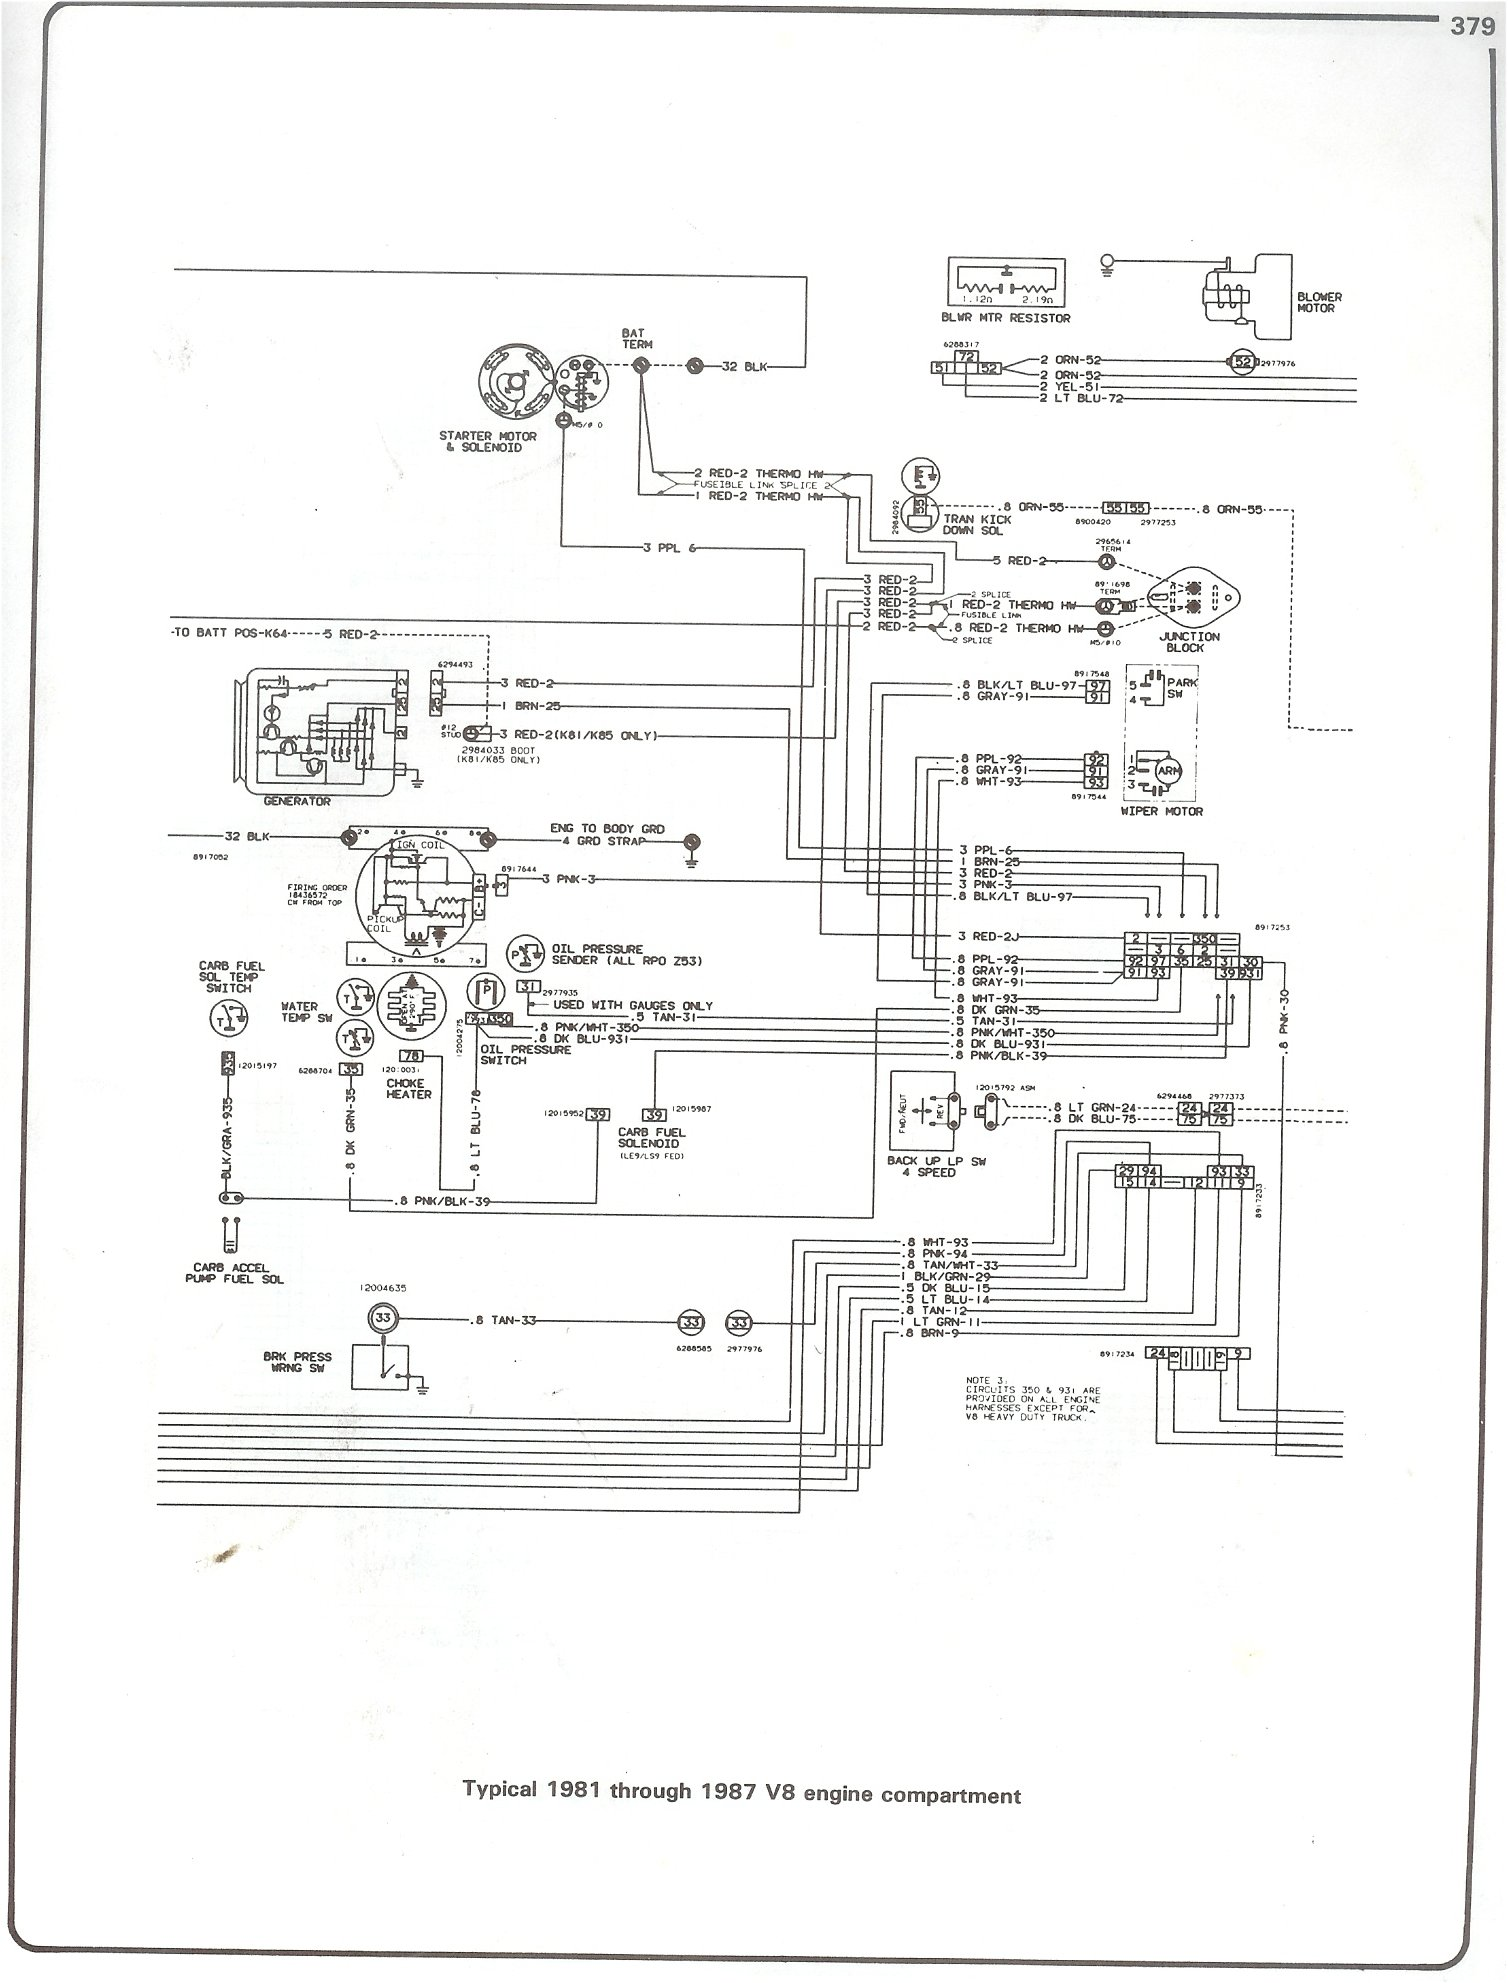 81 87_V8_engine chevy wiring diagrams wiring diagrams for chevy trucks \u2022 free 2000 Astro Van Wiring Diagram at edmiracle.co